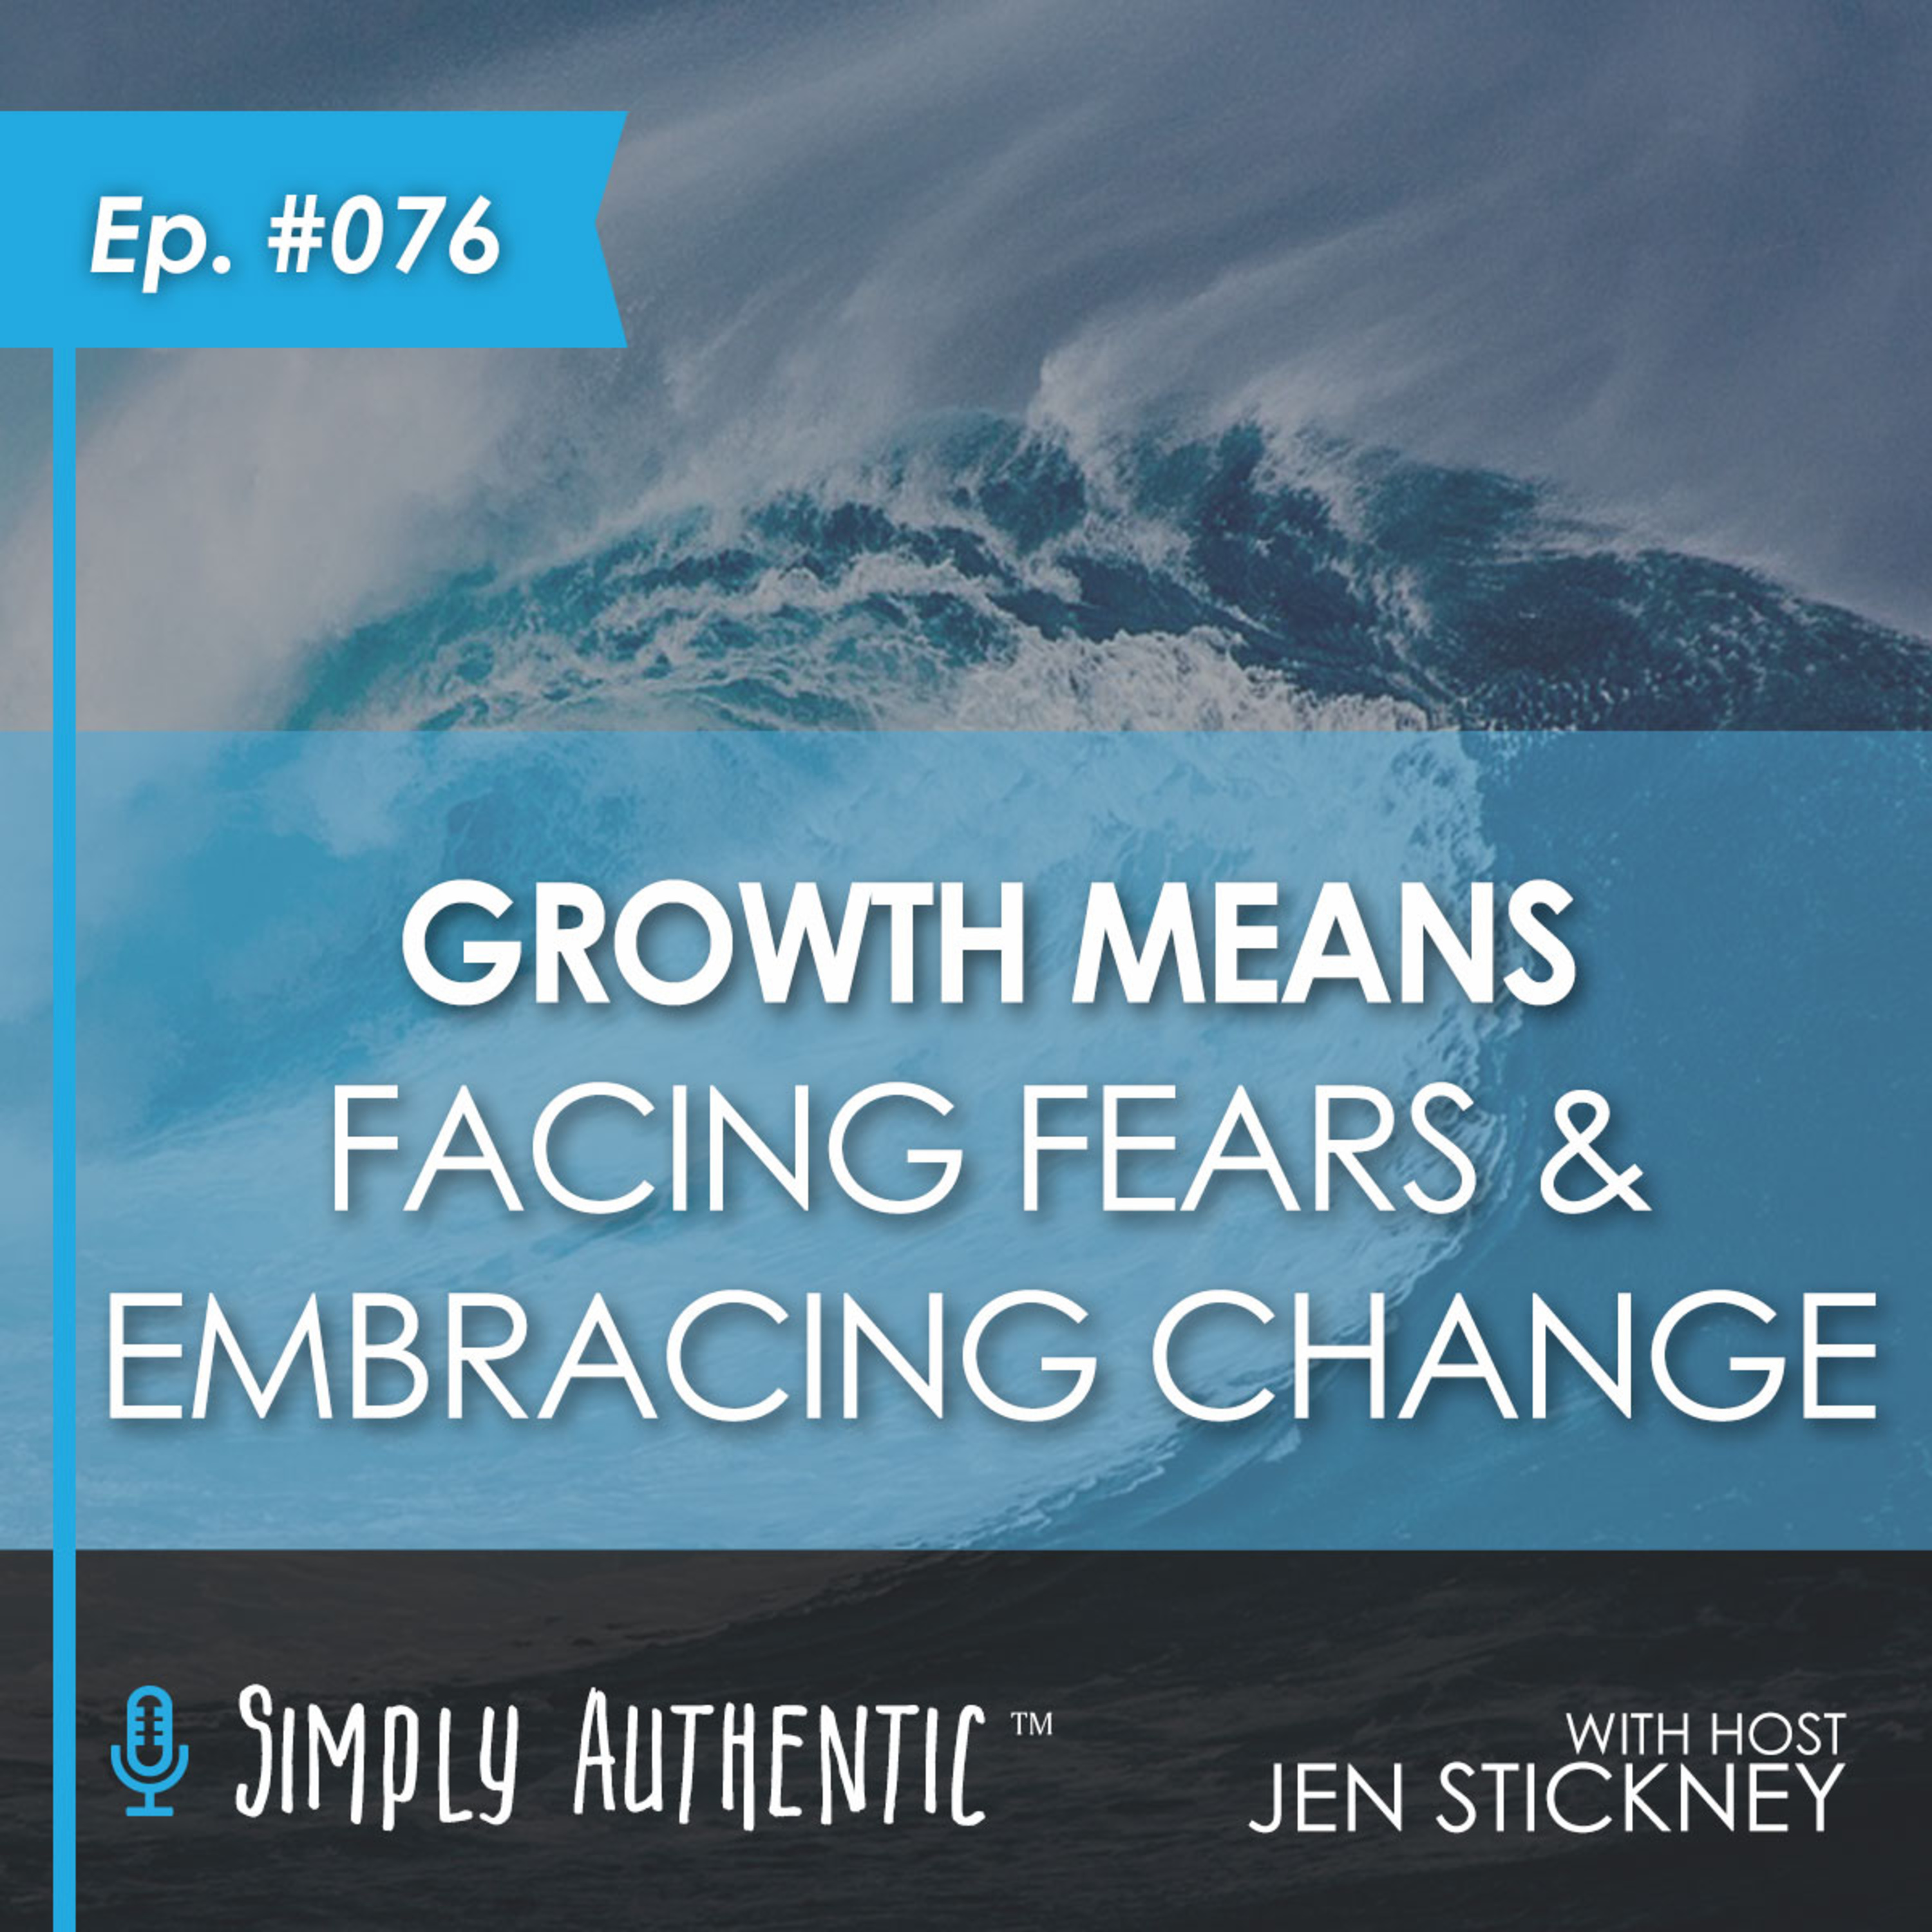 Growth Means Facing Fears and Embracing Change